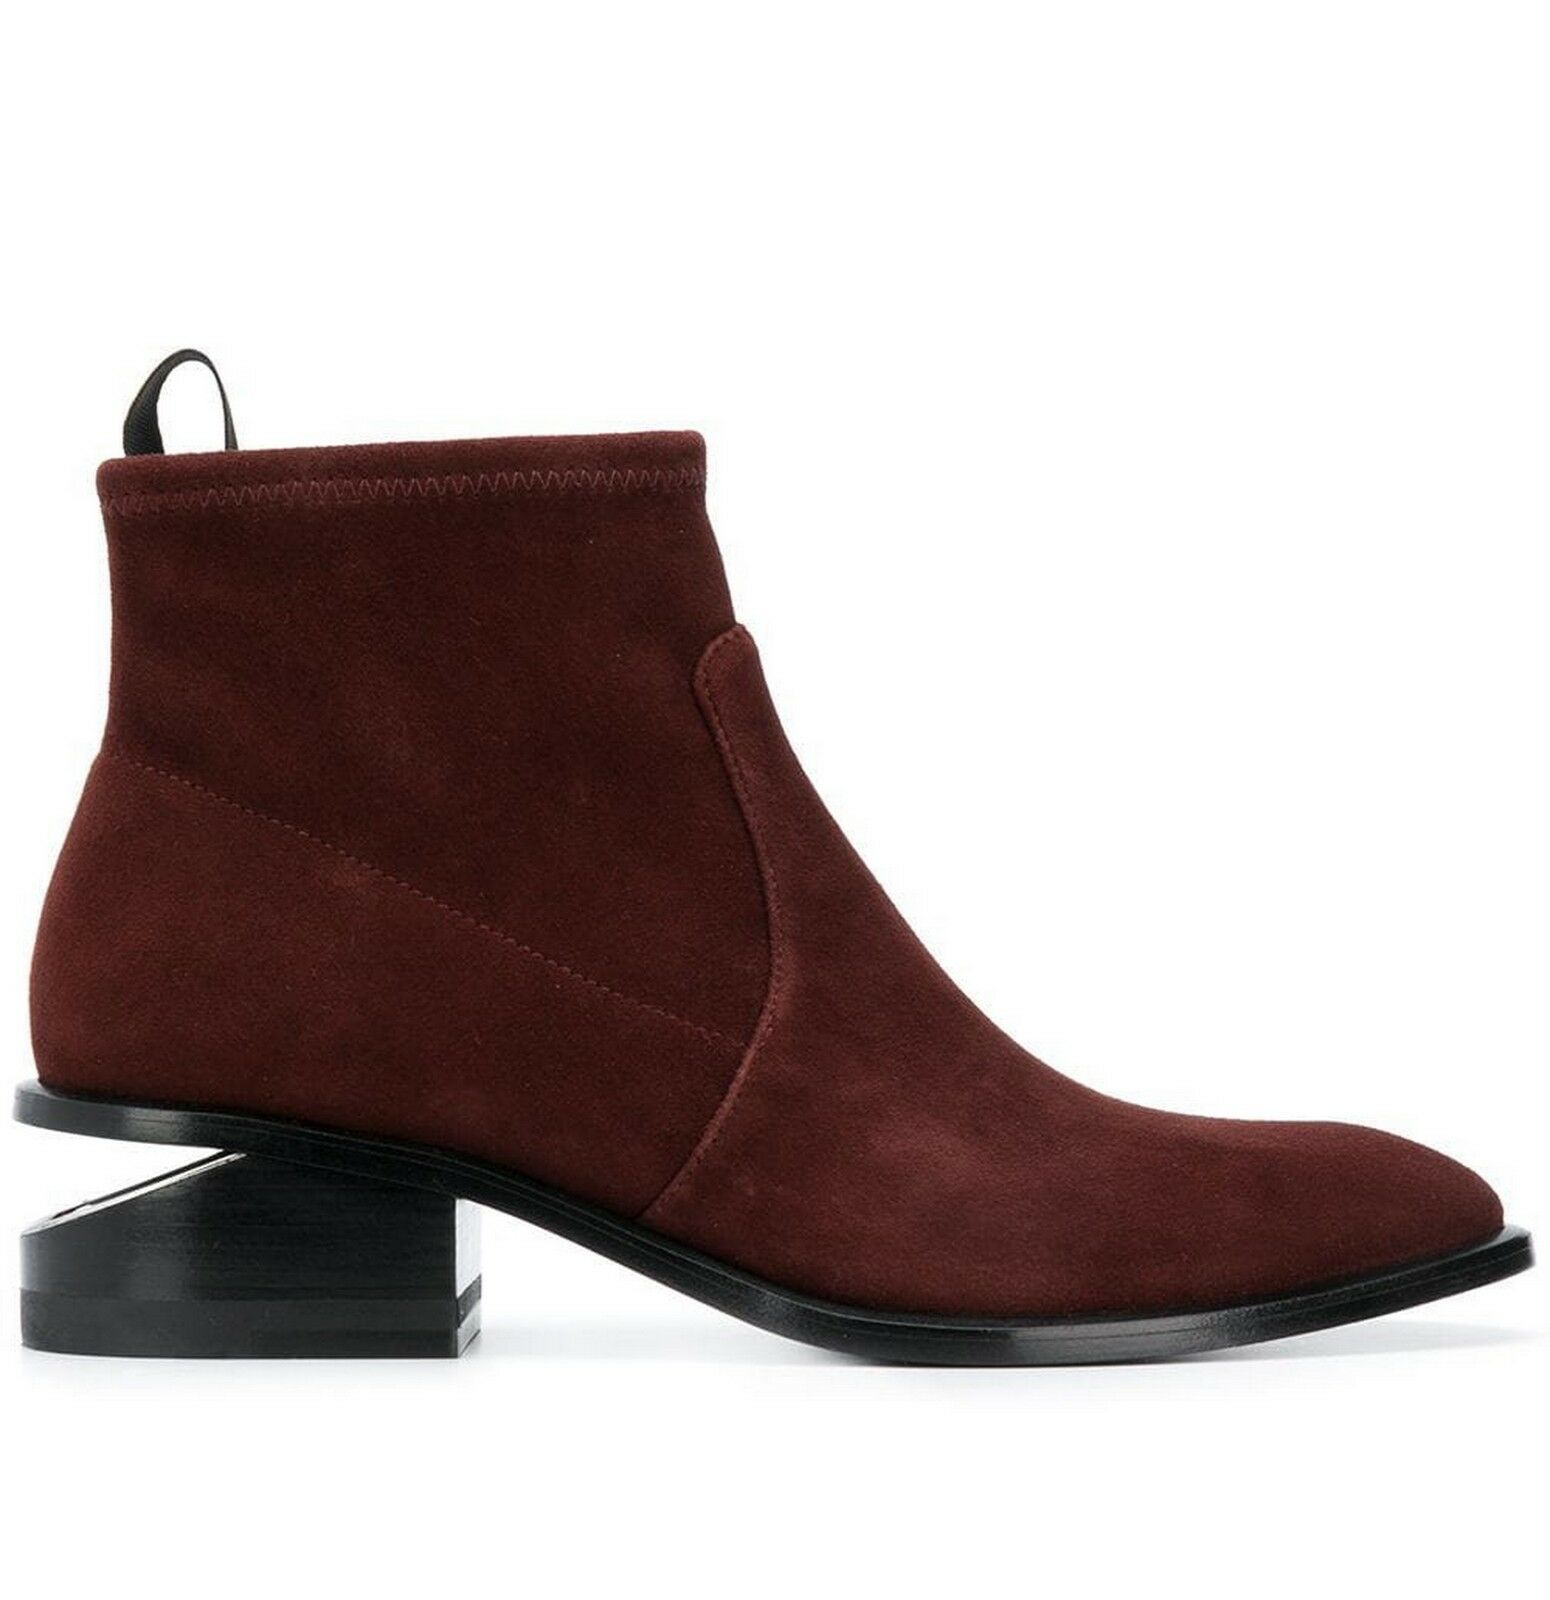 NEW ALEXANDER WANG Kori Cut Out Heel Suede Bootie shoes, Cranberry, EU36.5  595